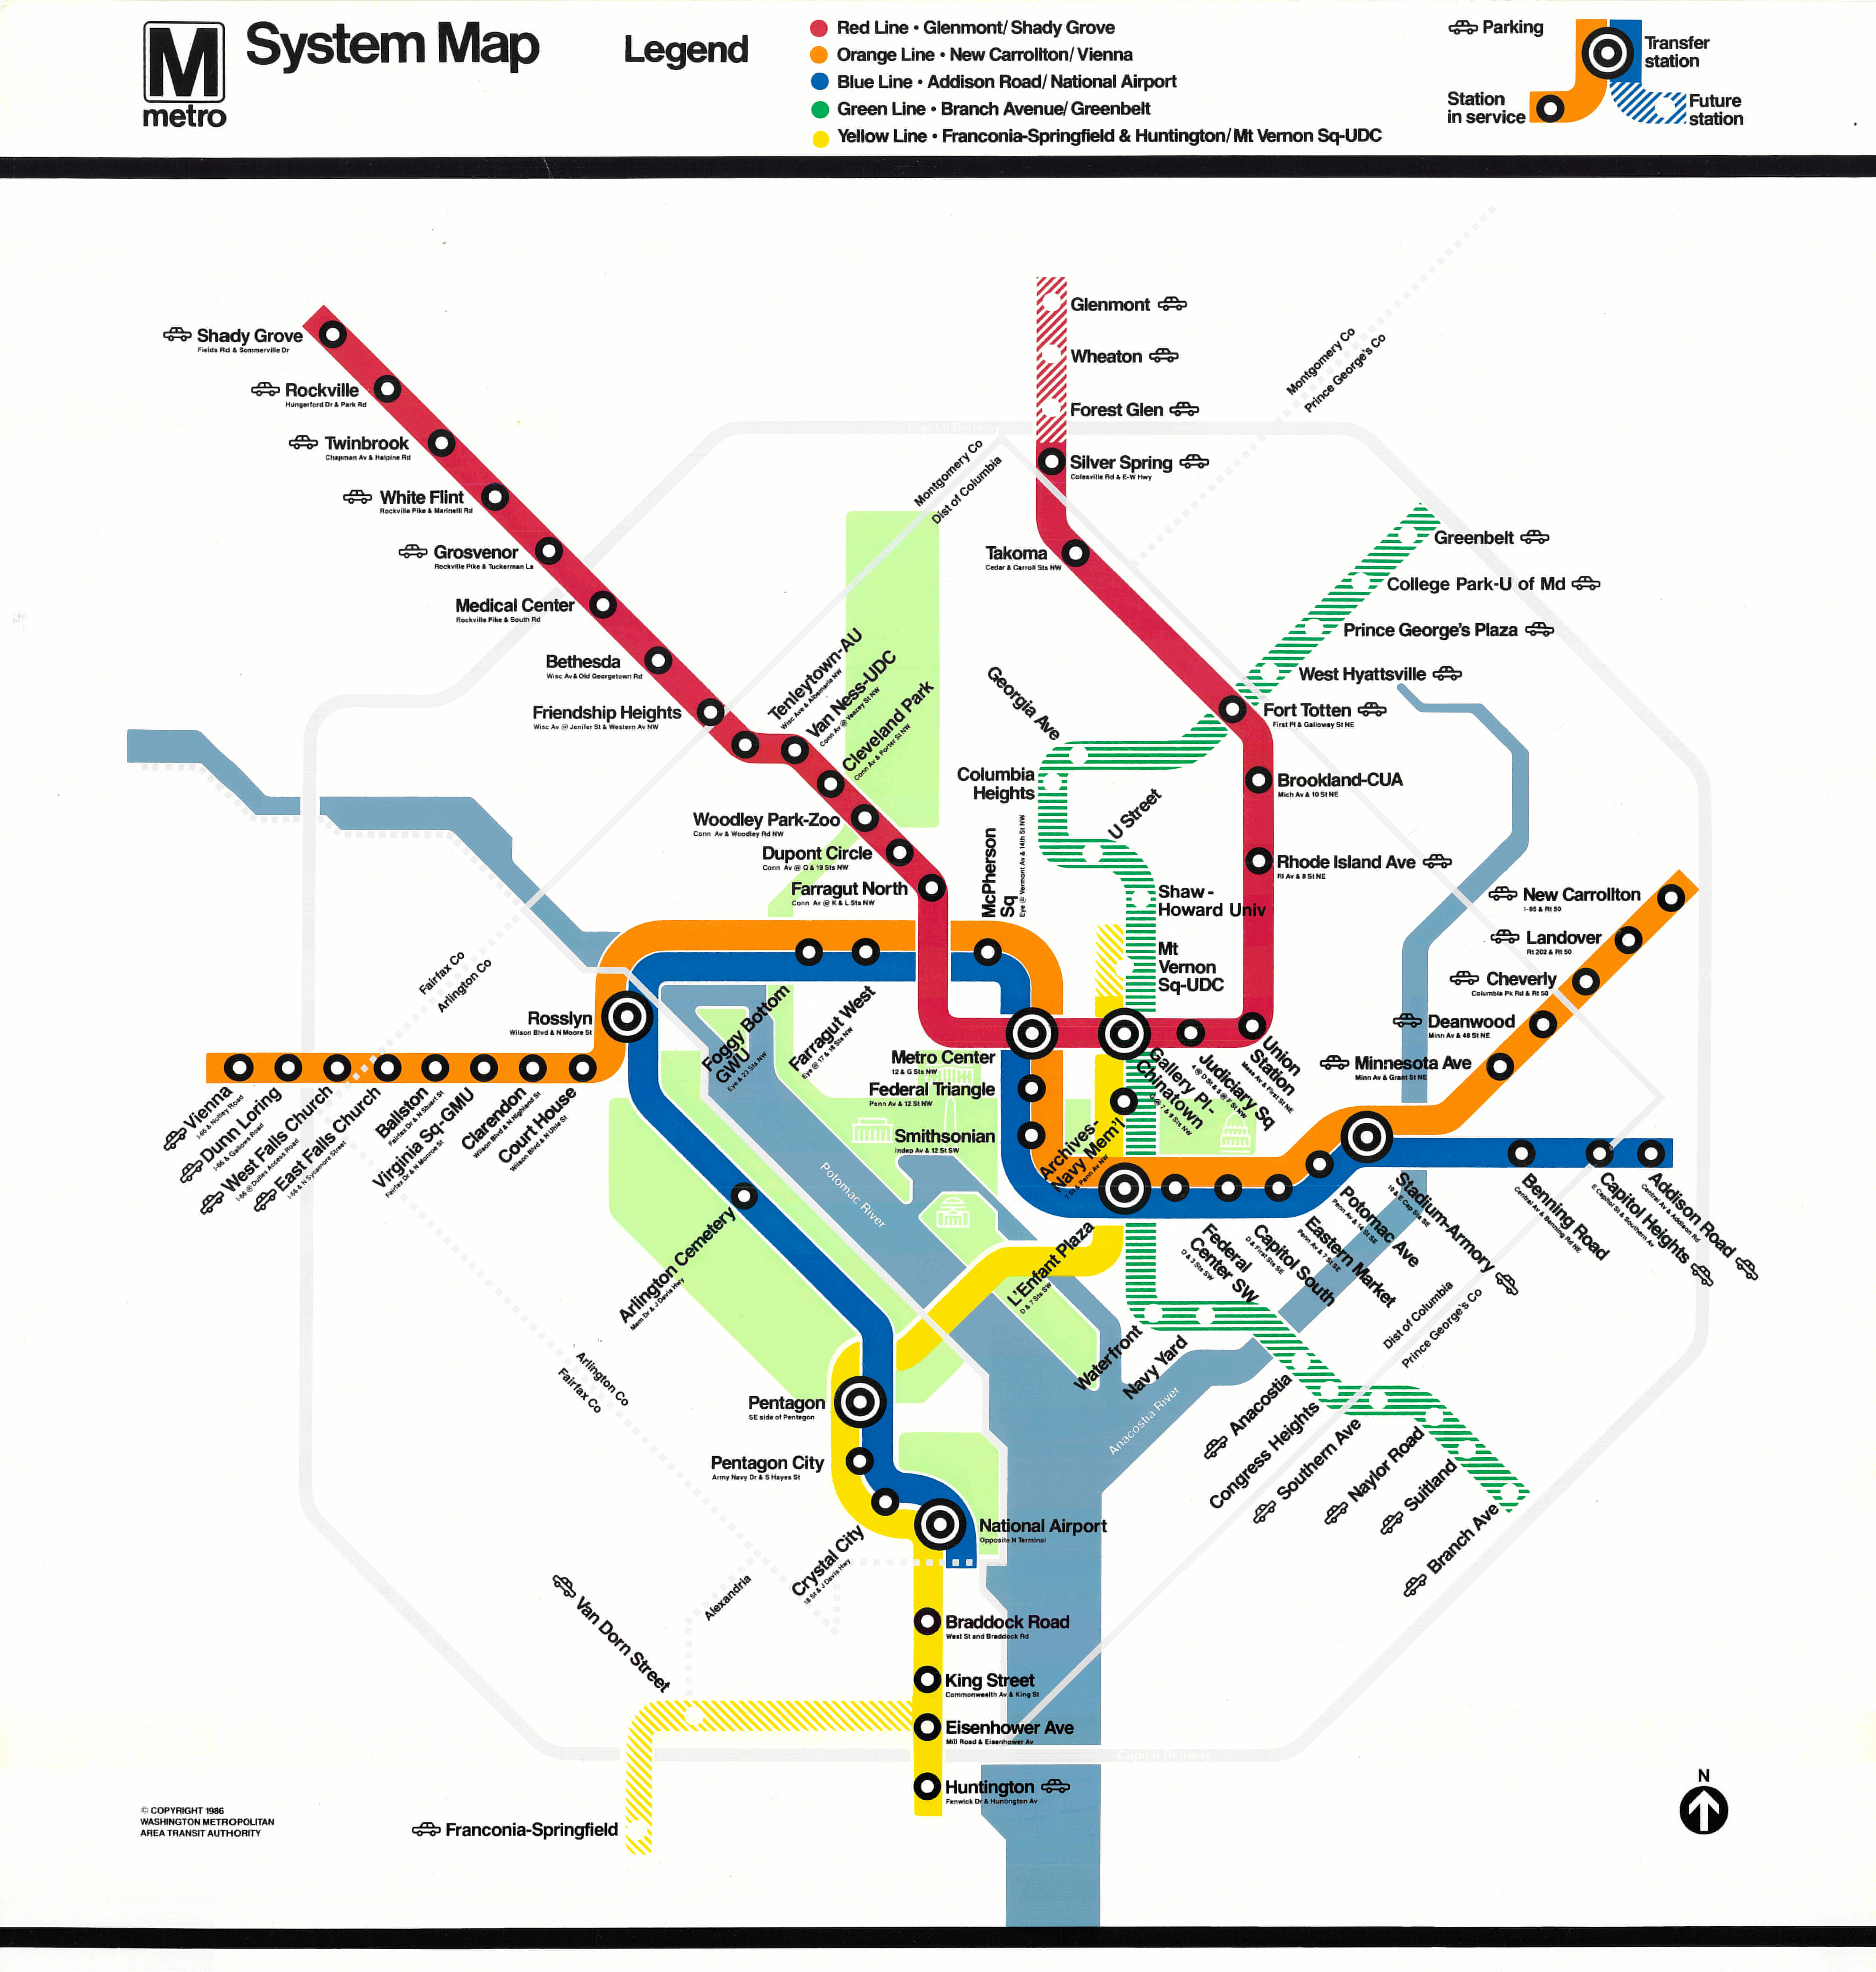 DC Metro Maps on map of the sewers, map of bus system, map of the river system, map of the tri-state area, map of the city, map of the statue of liberty, map of the university campus, map of the harlem renaissance, map of the world's fair, map of the supreme court, map of the navy yard,